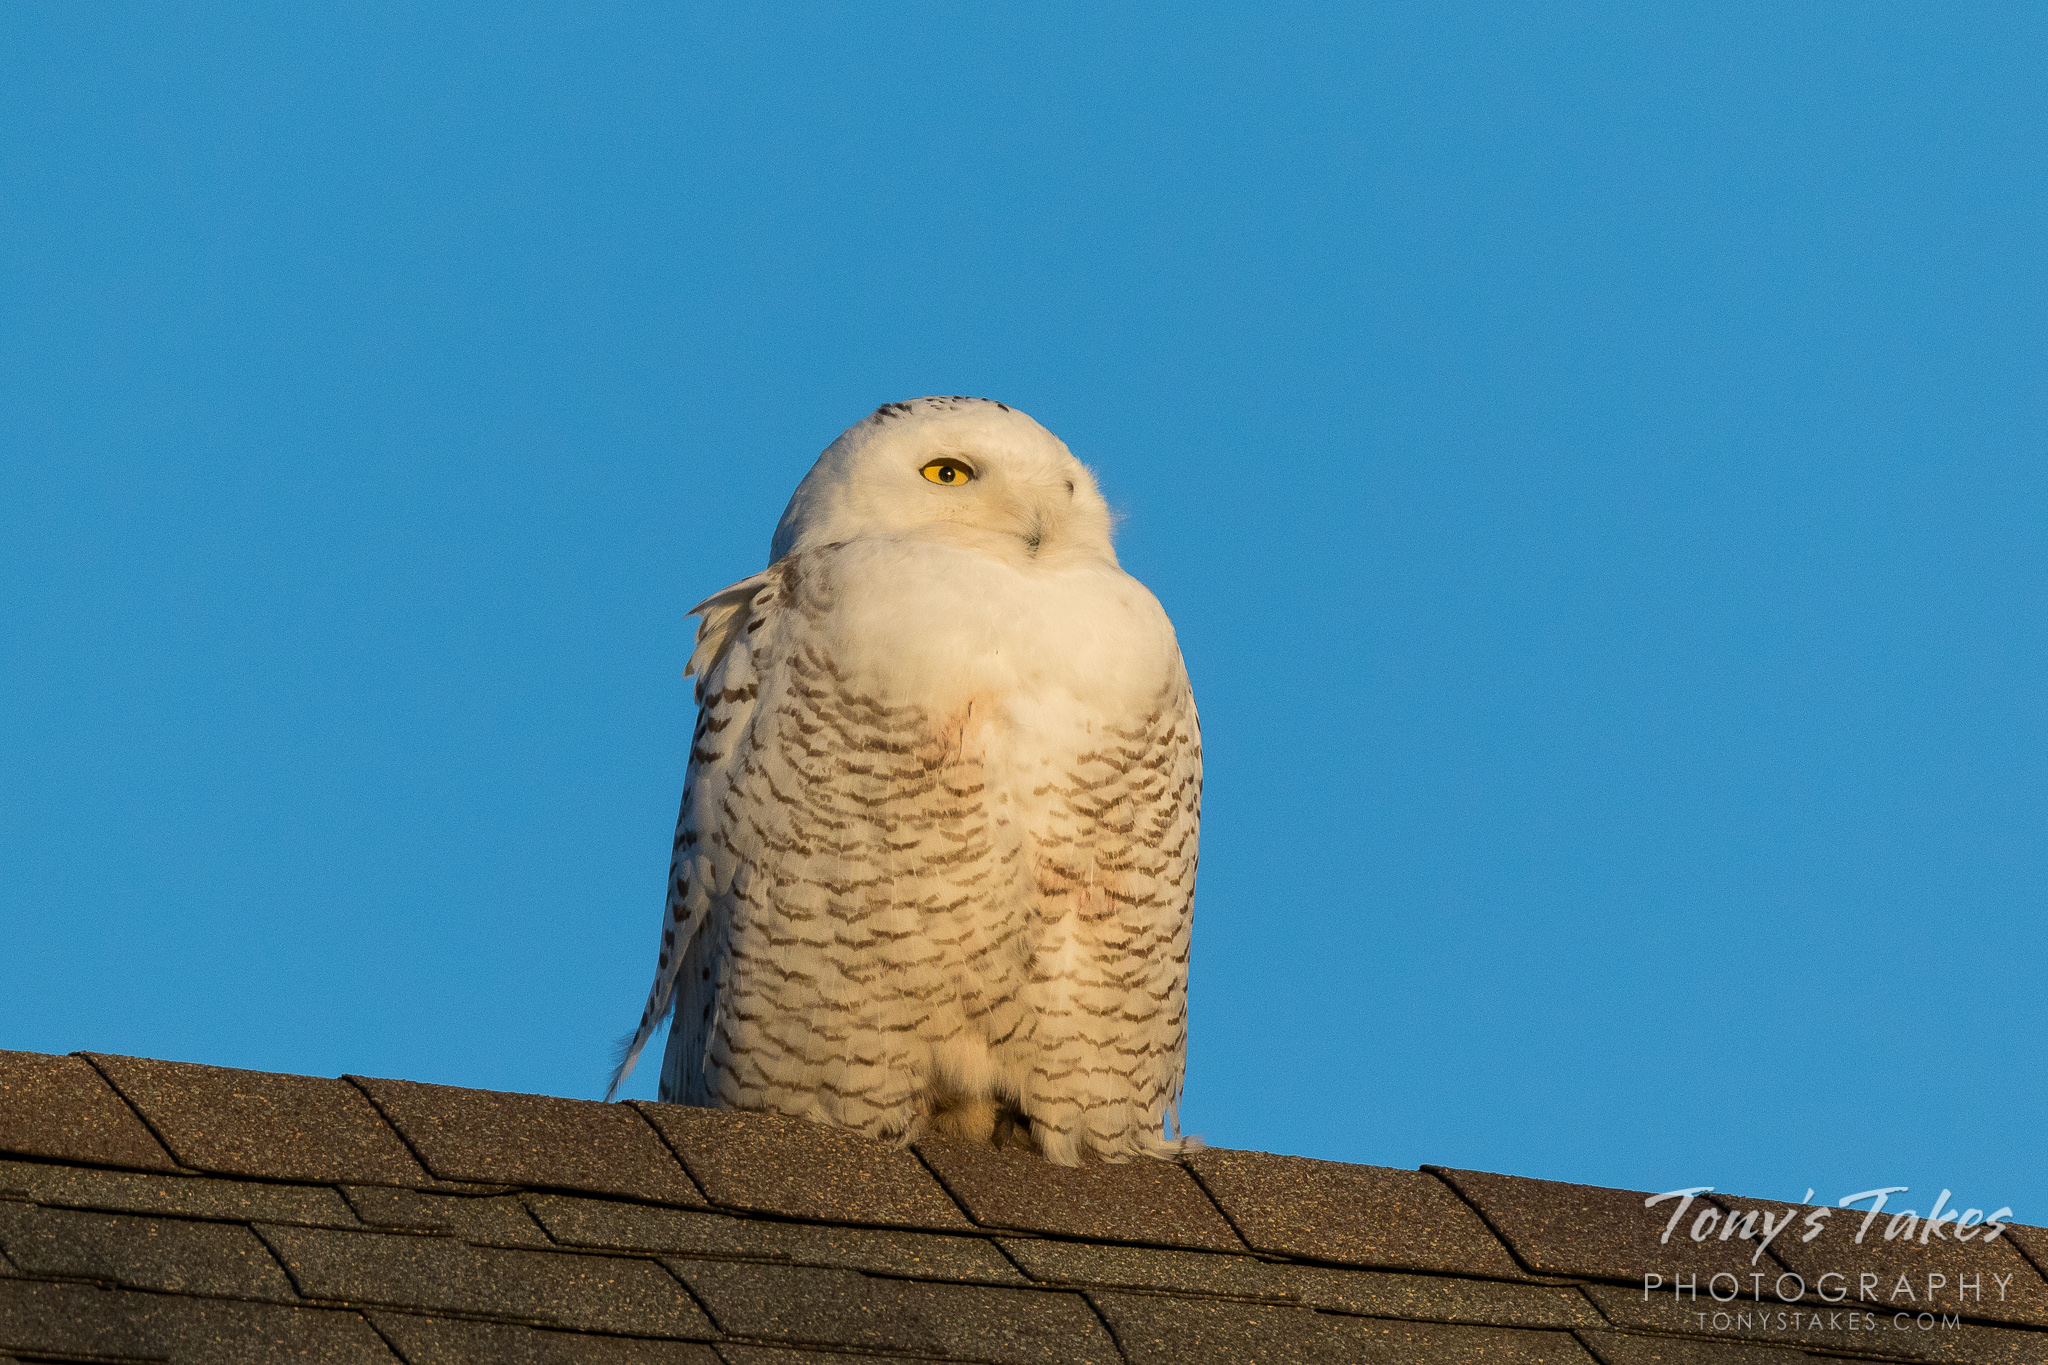 Snowy Owl chilling out in suburbia